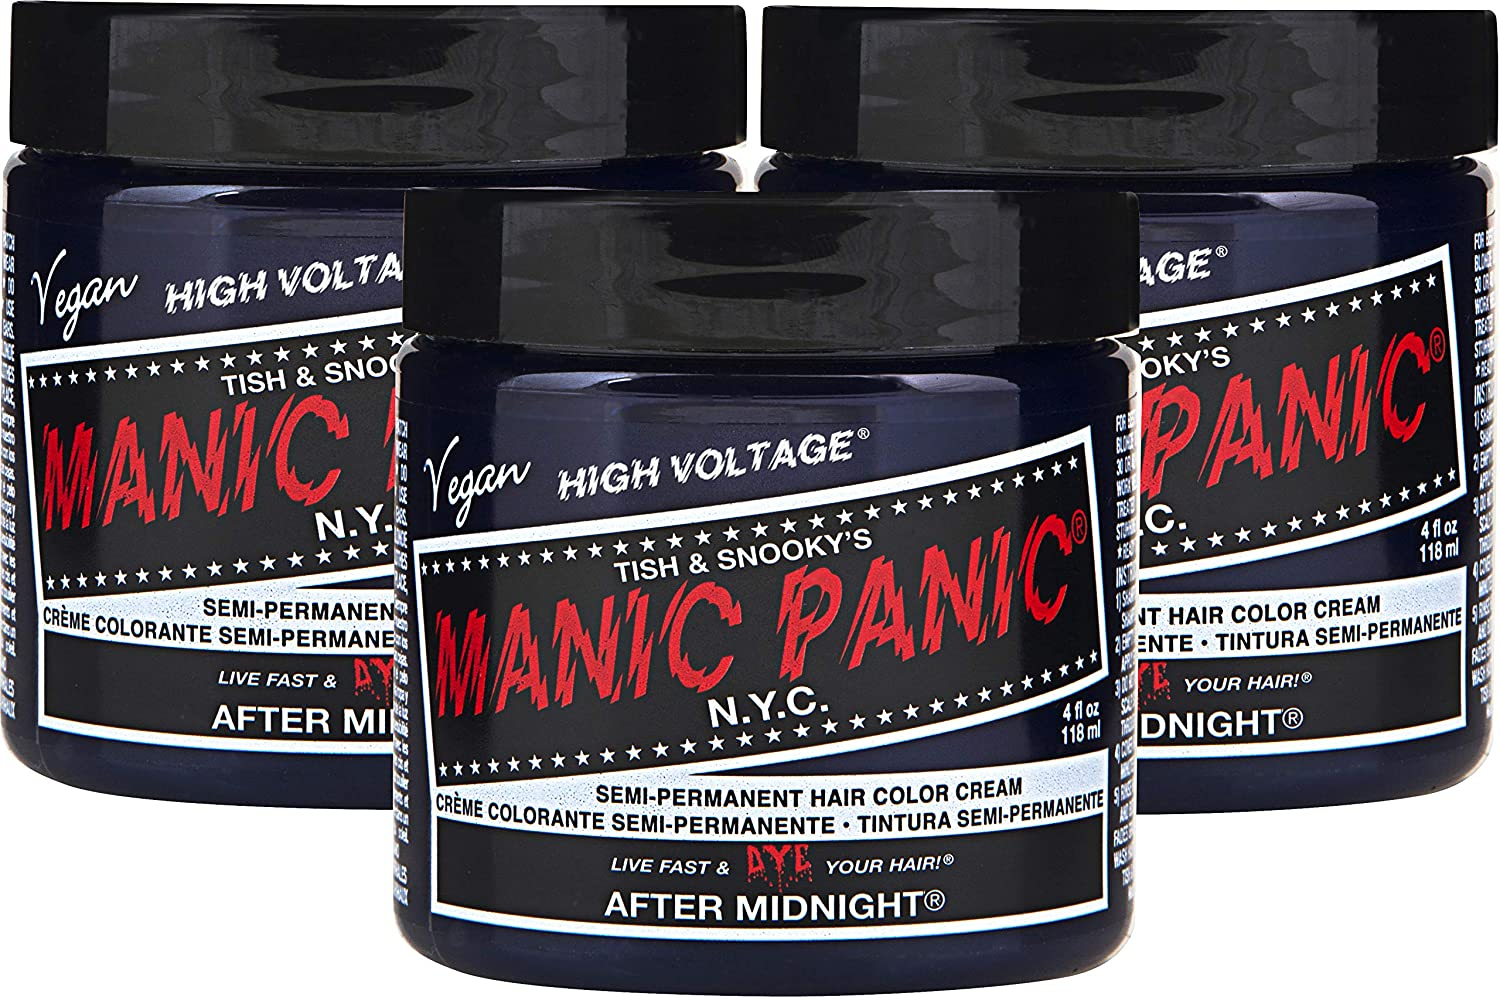 Manic Panic After Midnight Hair Dye – Classic High Voltage - (3PK) Semi-Permanent Hair Color - Vivid, Navy Blue - For Dark & Light Hair – Vegan, PPD & Ammonia Free - For Coloring Hair on Women & Men